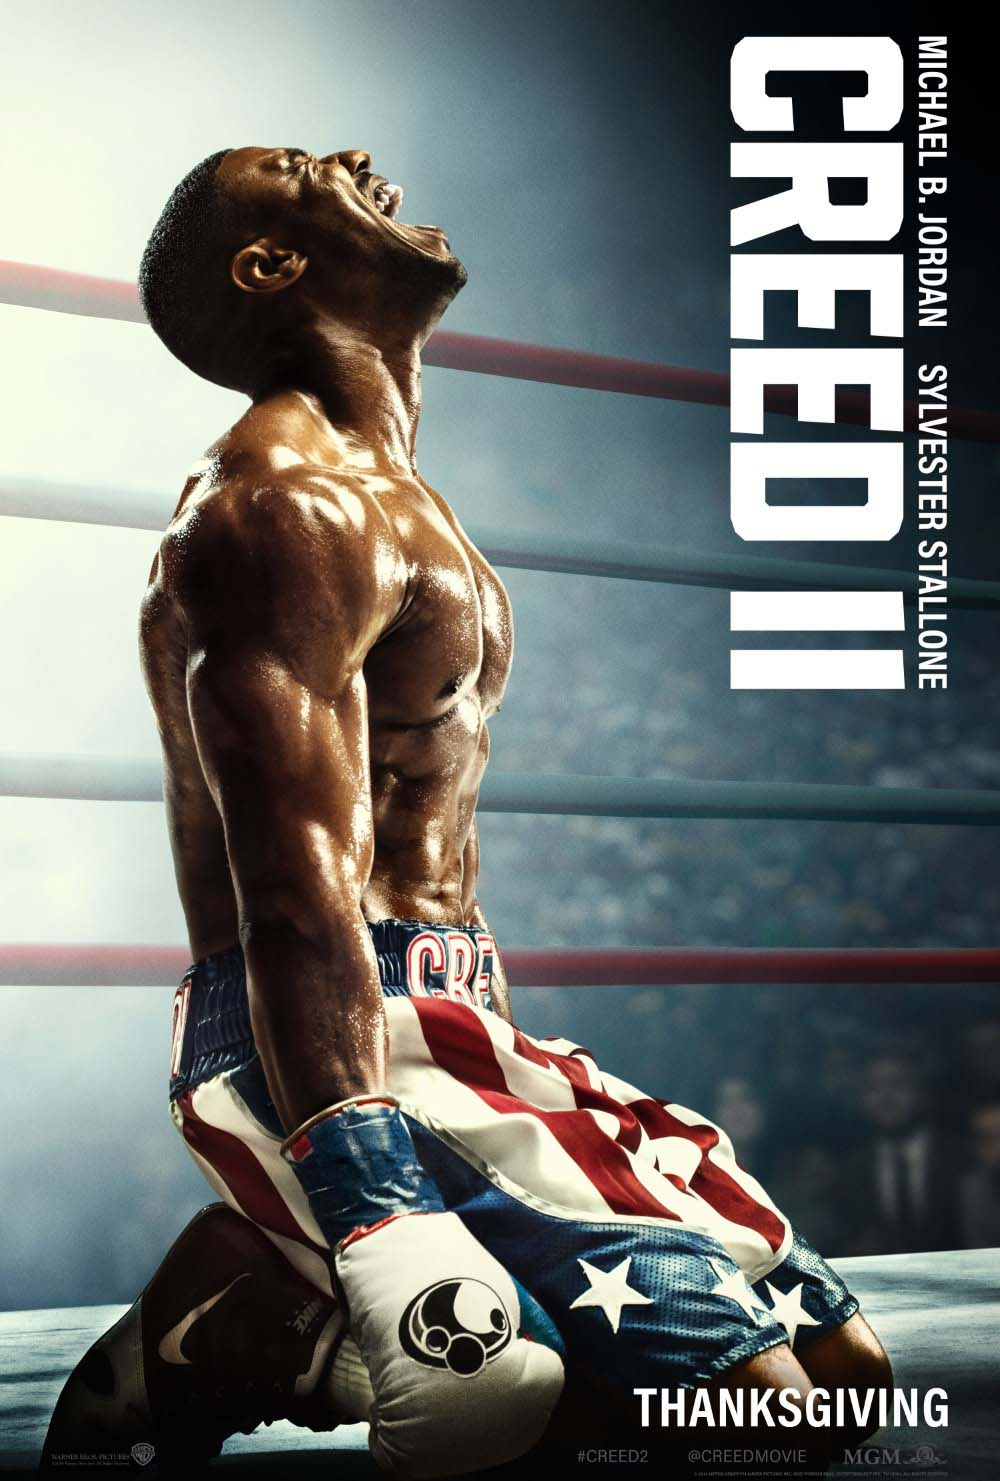 Creed II (2018) Full Movie Free Online